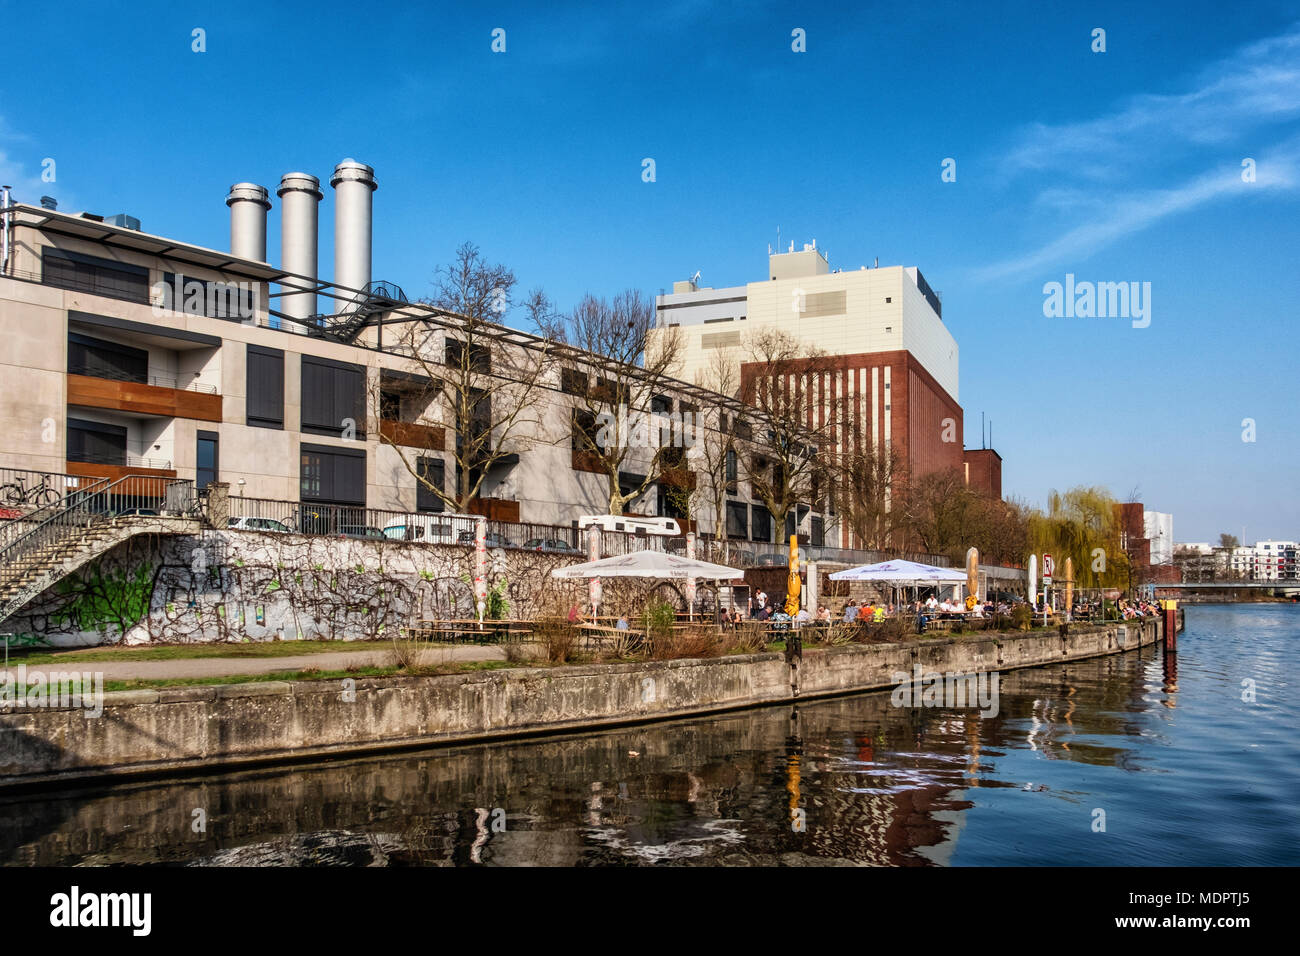 Berlin Charlottenburg. Caprivi riverside beer garden & Noack Sculpture Center with gallery, museum & artists' spaces on the banks of the Spree.        - Stock Image